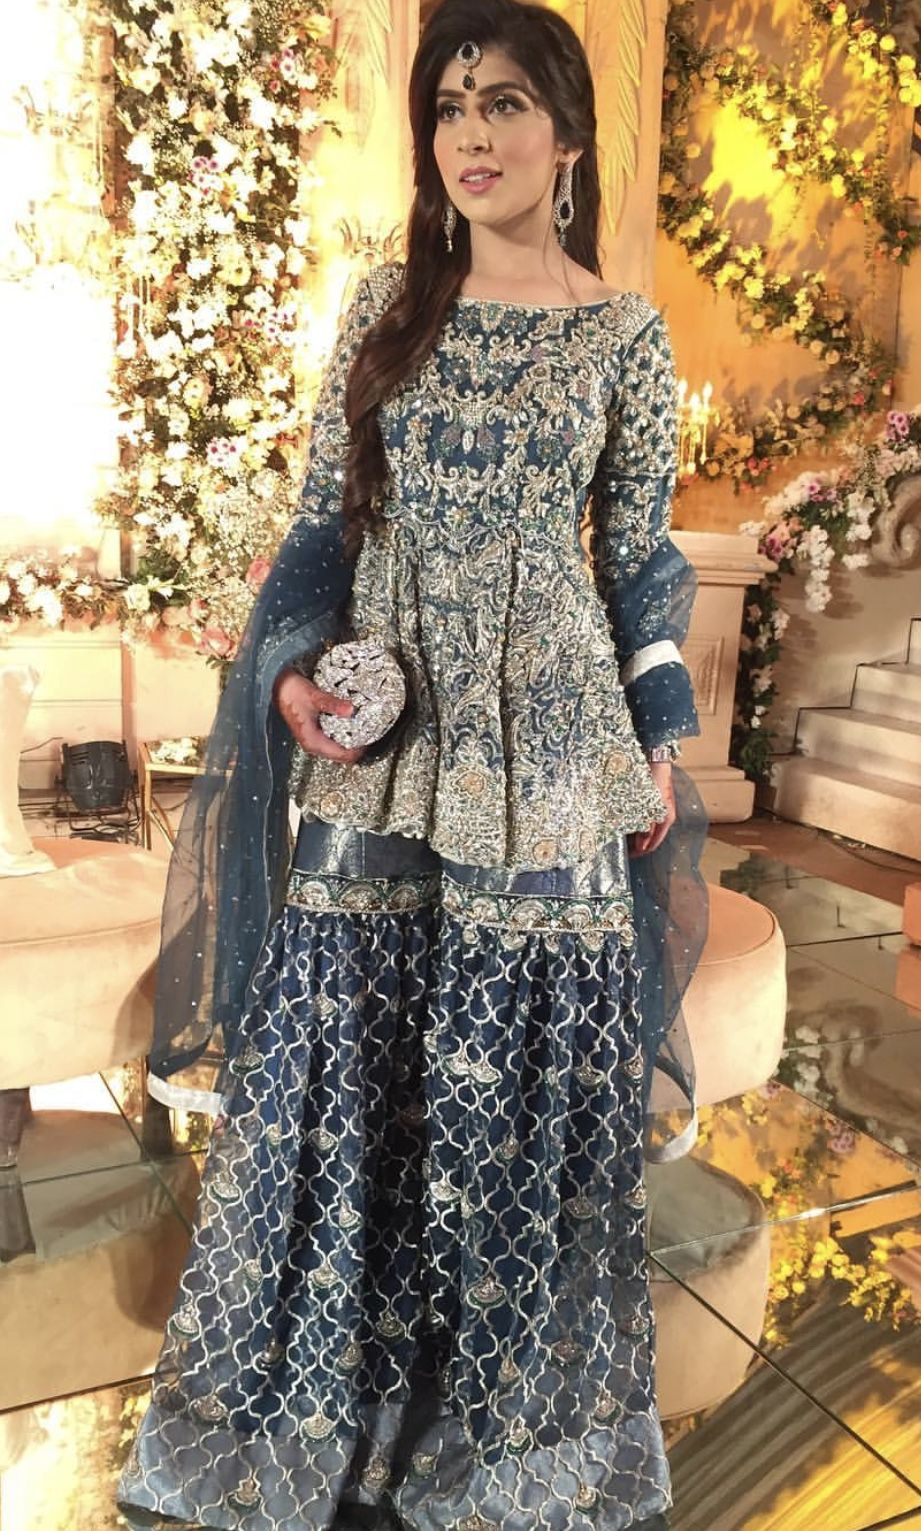 brides sister wearing ahmad sultan at the barat  wedding